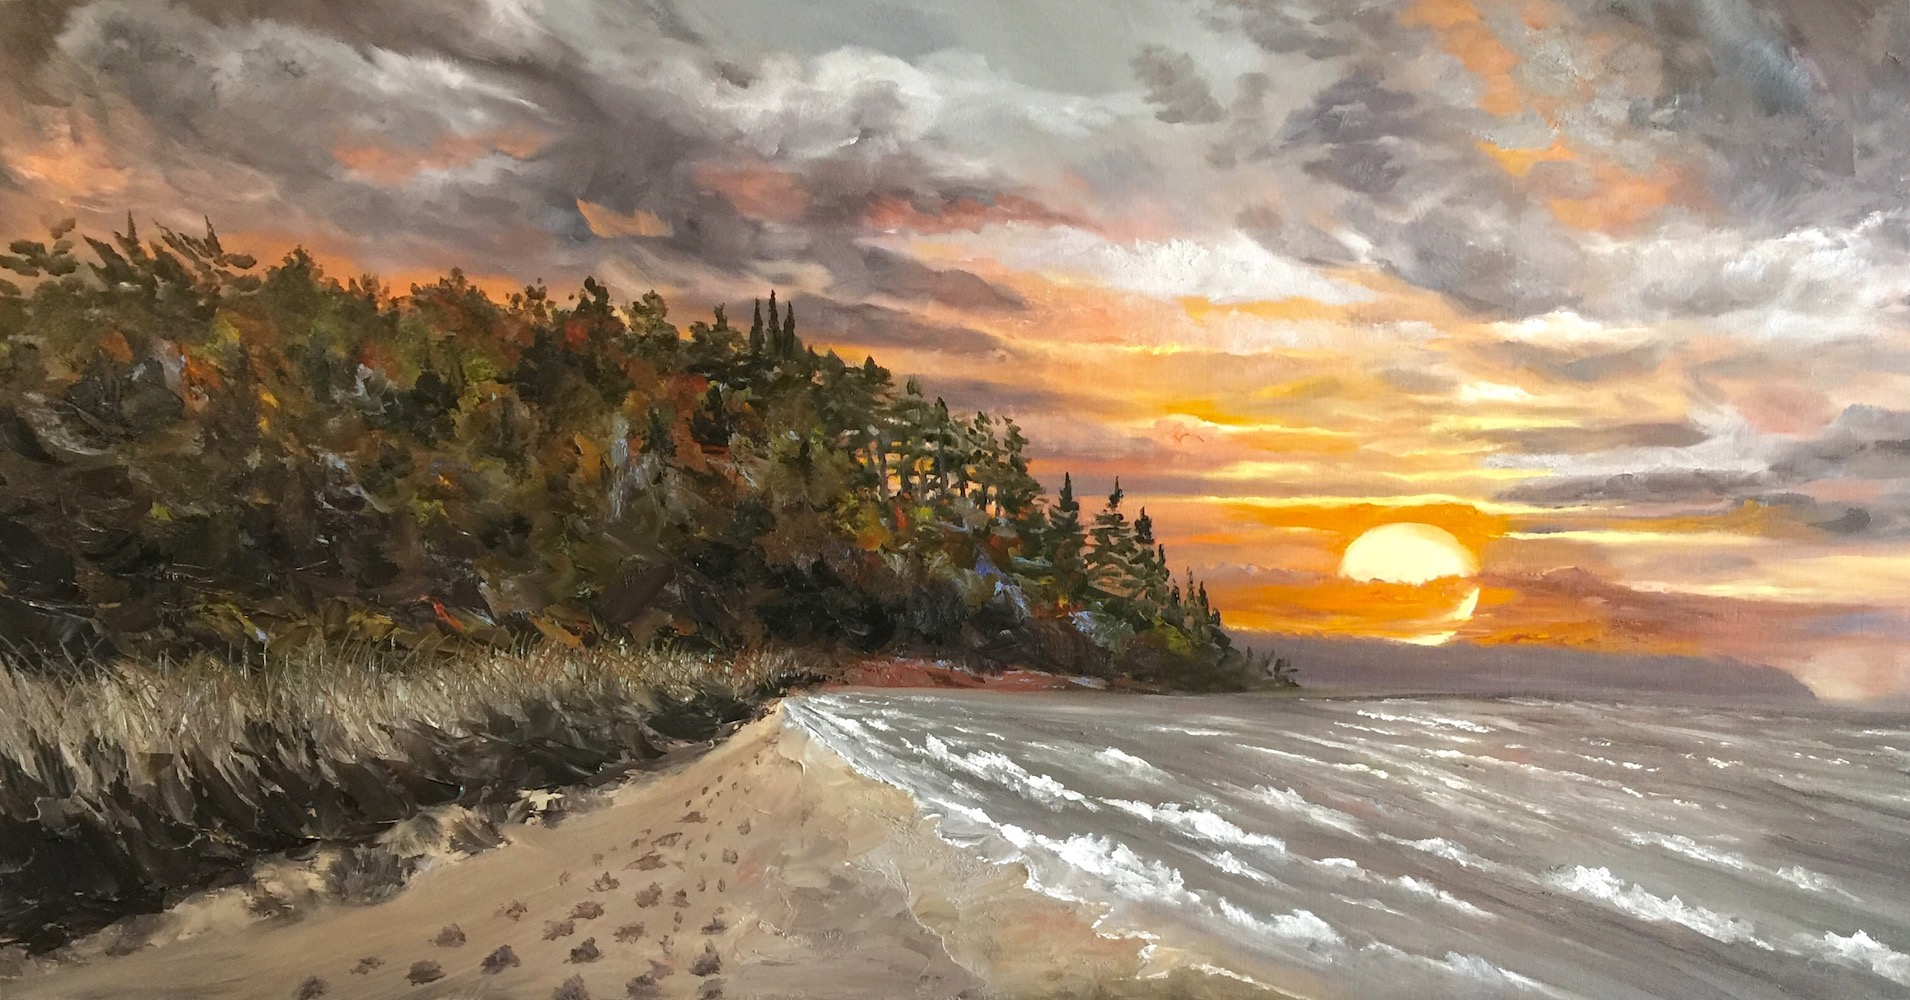 Serene Sunset - Painting by Stephanie Schlatter